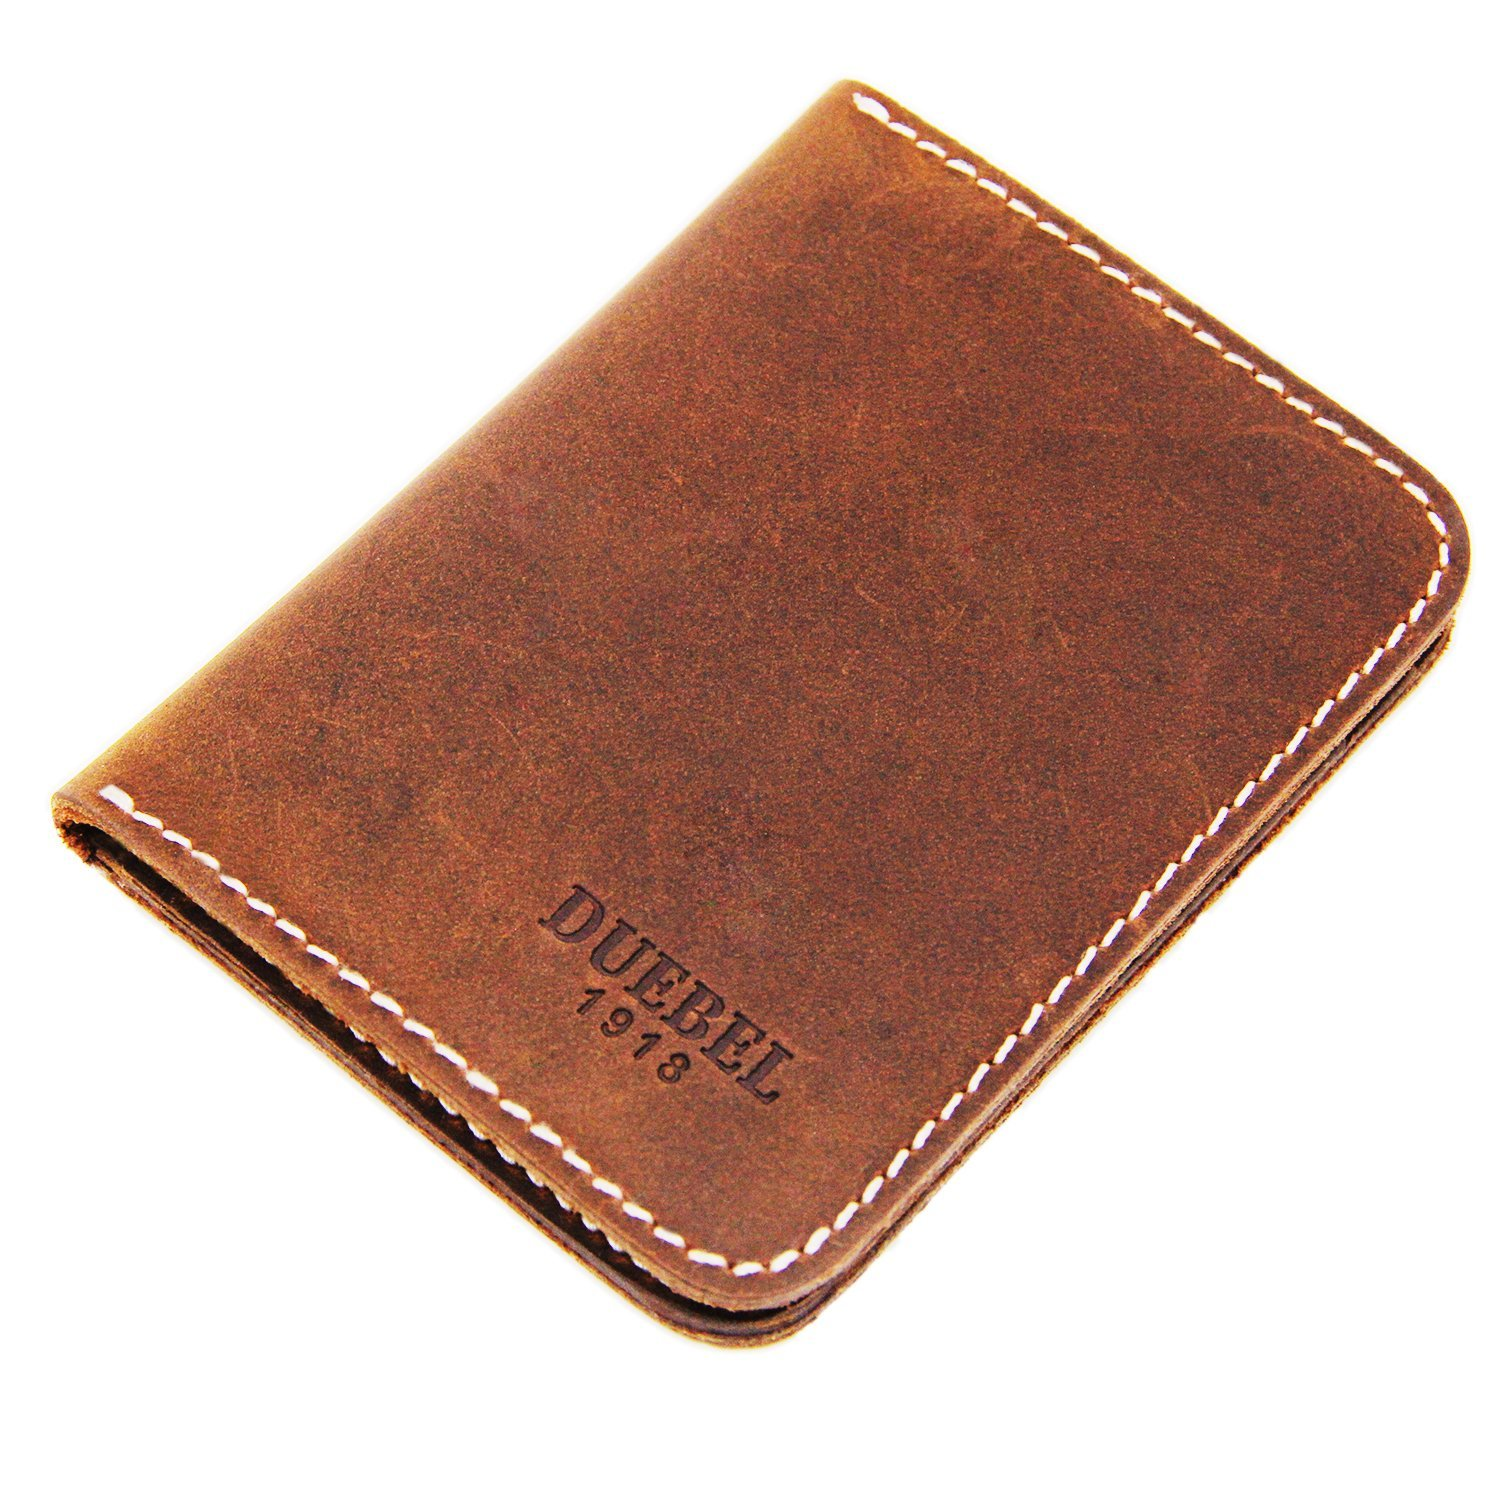 DUEBEL Bi Fold Slim Top Genuine Leather Thin Minimalist Front Pocket Wallets for Men, Made From Full Grain